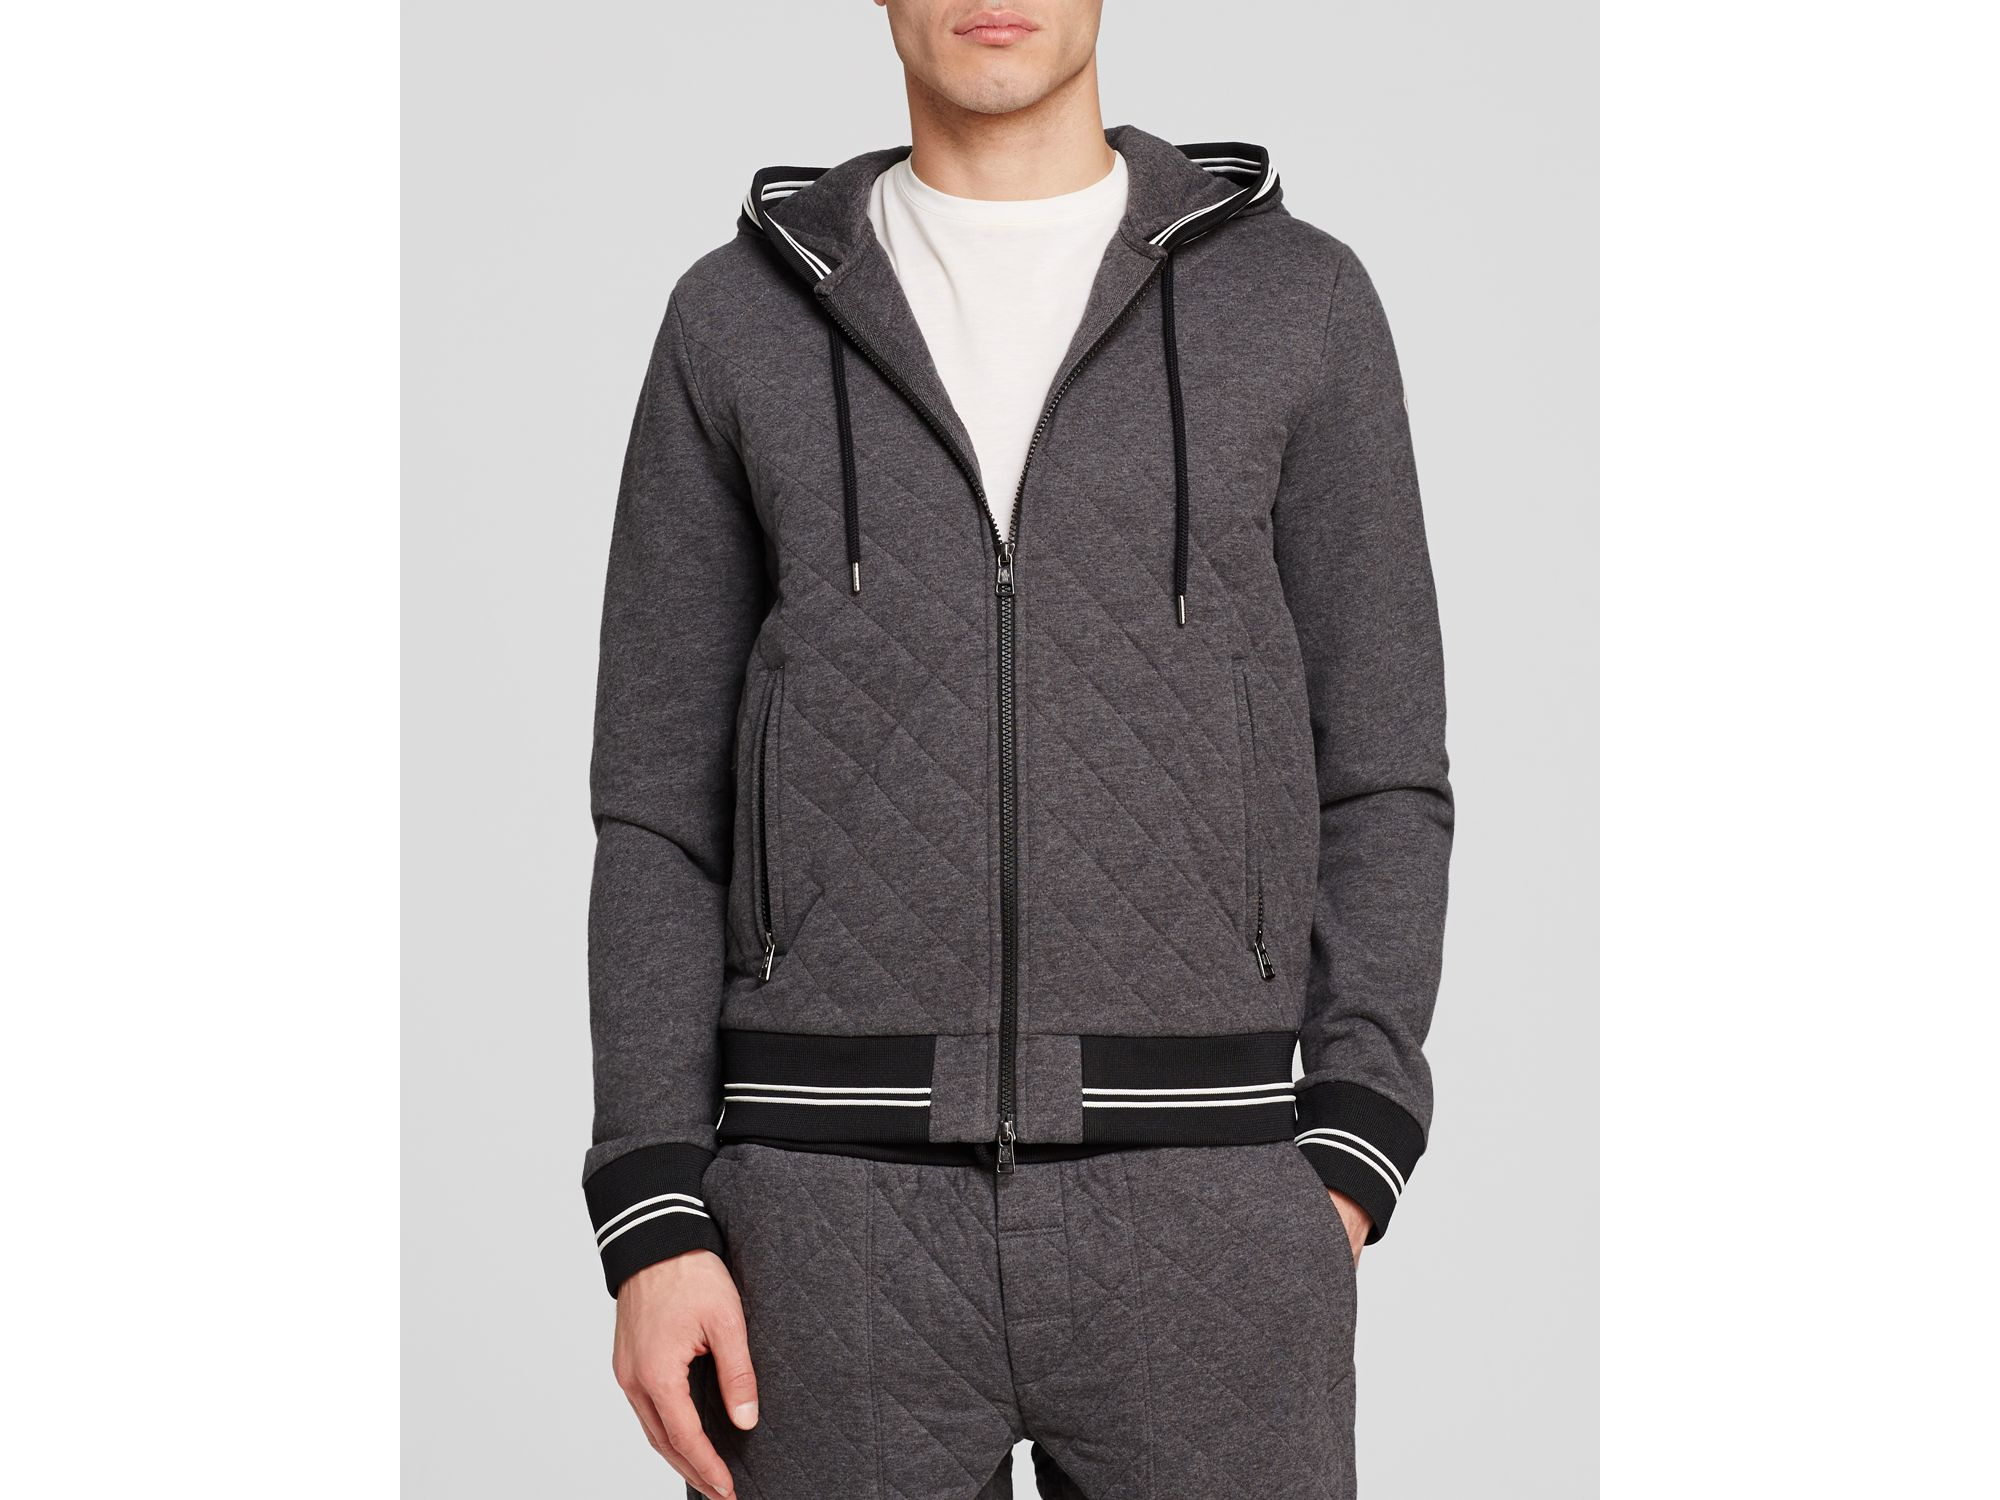 Lyst - Moncler Maglia Quilted Cardigan in Gray for Men : quilted cardigan - Adamdwight.com